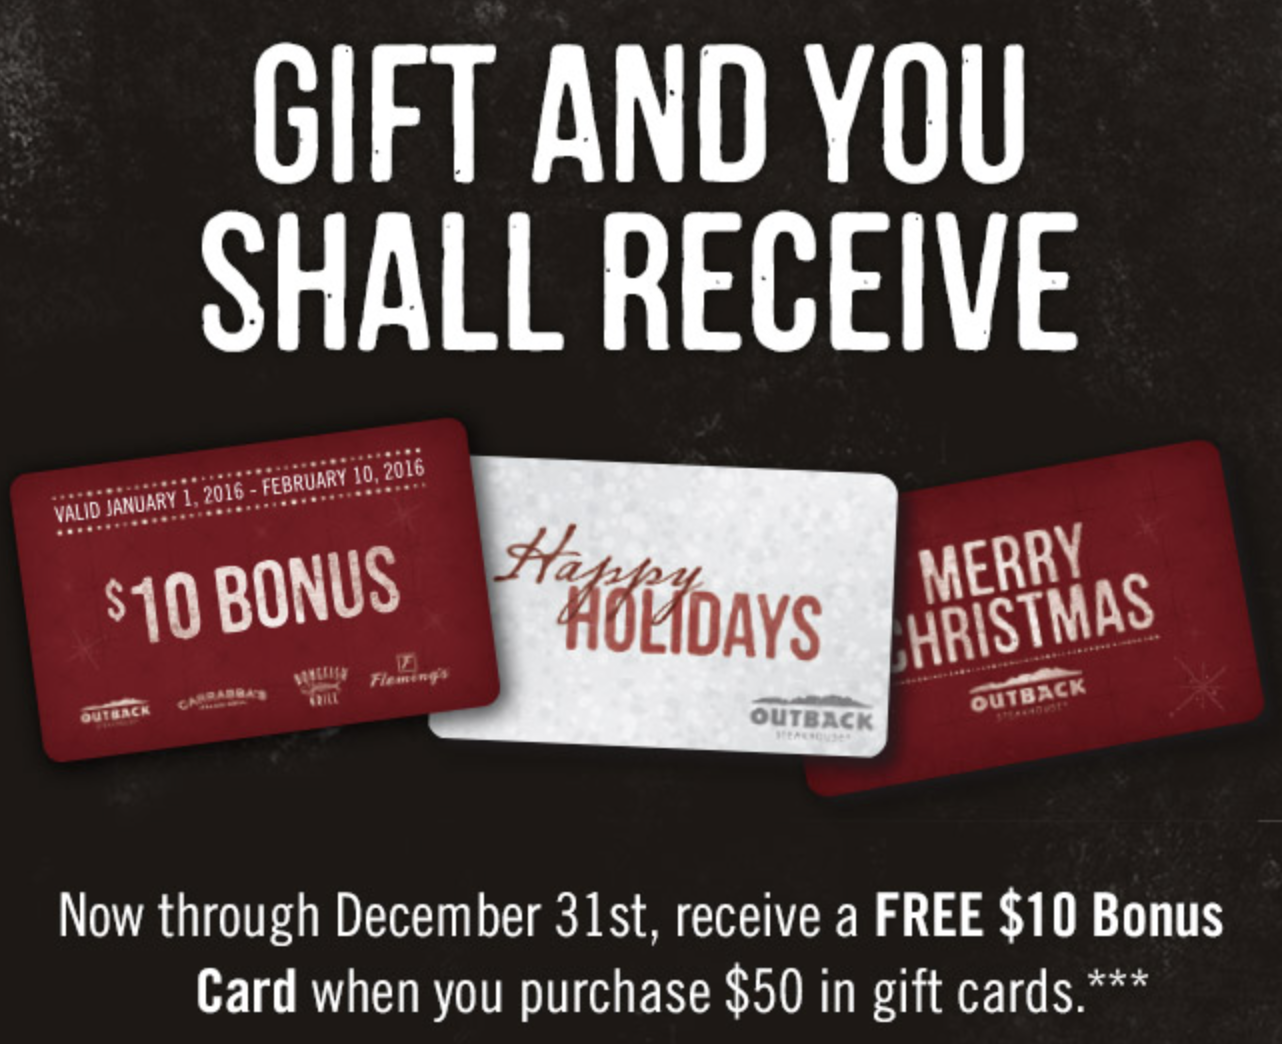 outback gift card deals tis the season for holiday bonus gift card offers 744